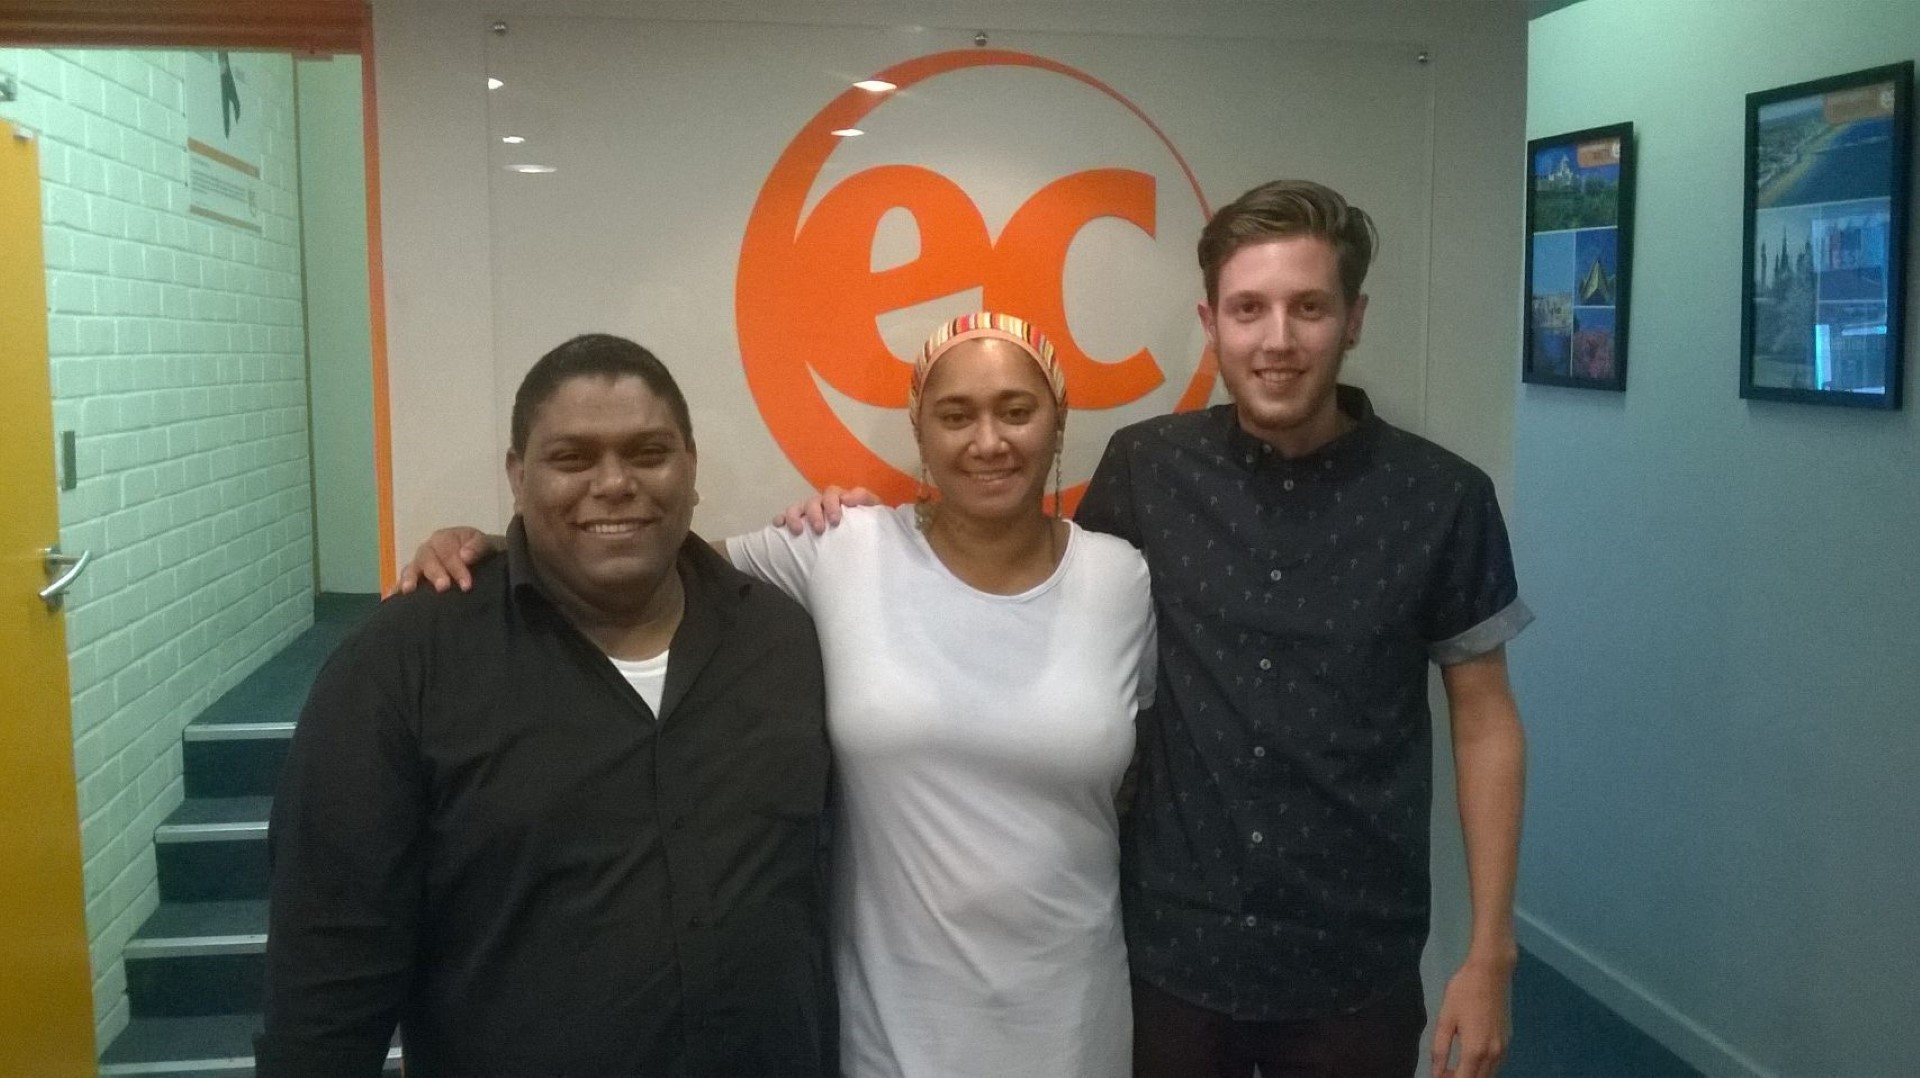 Sad goodbye to Abdul, Kaashiefa and Kevin who were learning English in Cape Town